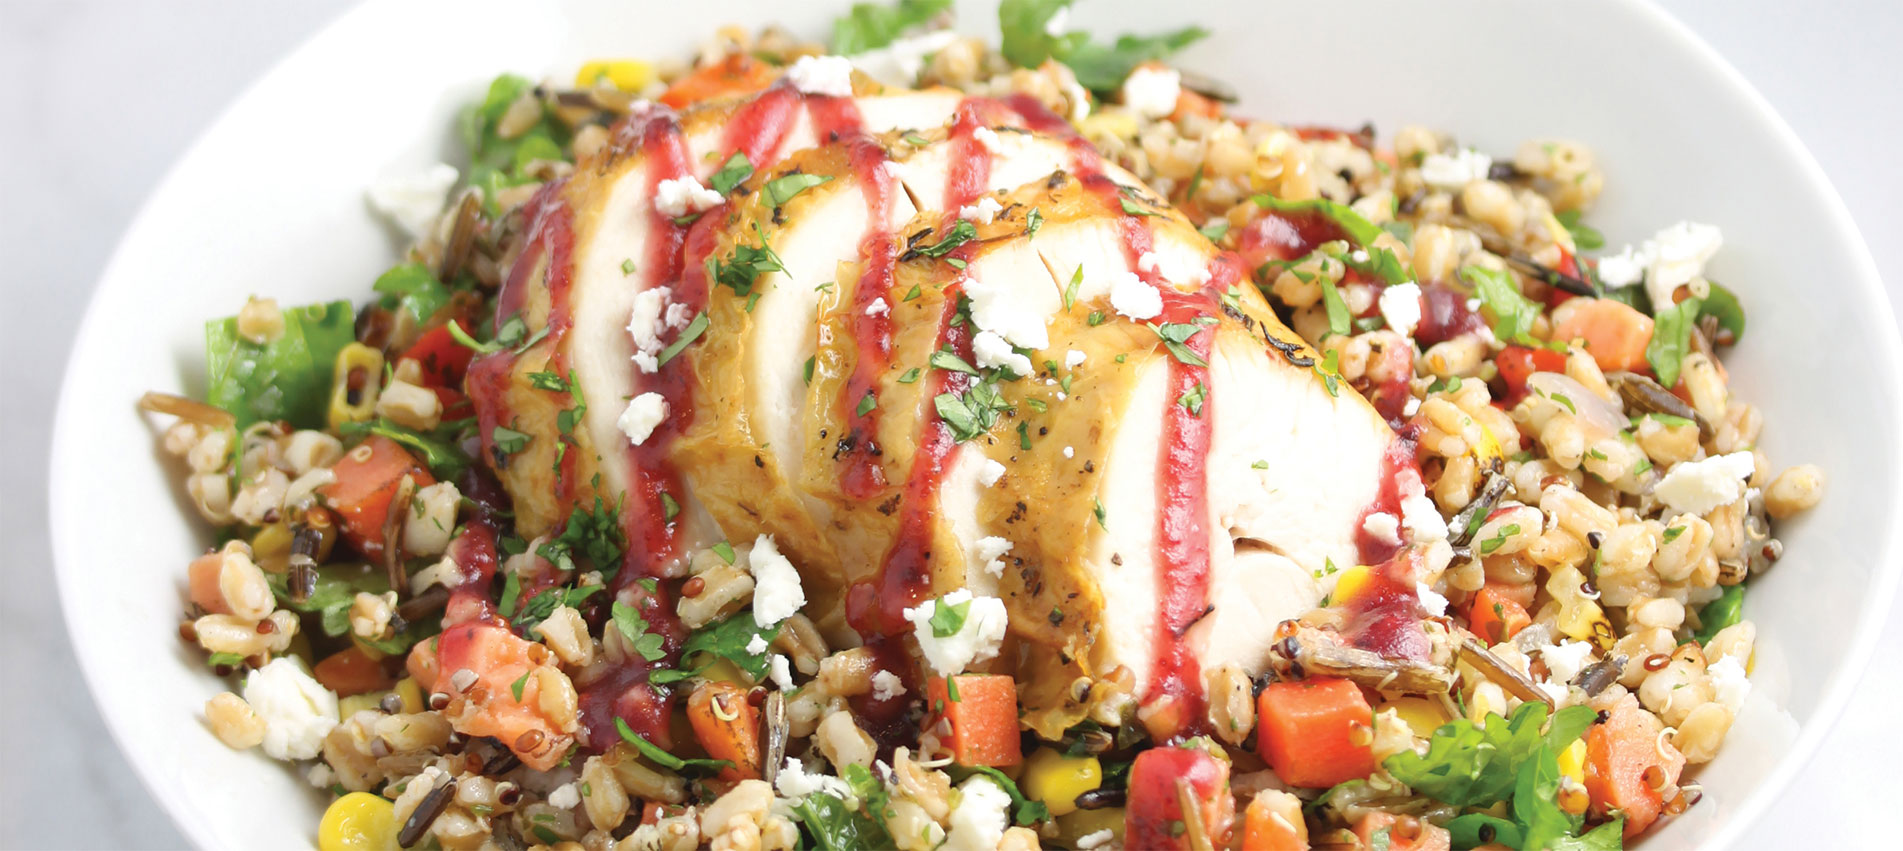 Featuring Haliburton's thaw and serve blend of farro, quinoa, sweet potato, wild rice, corn and red bell peppers